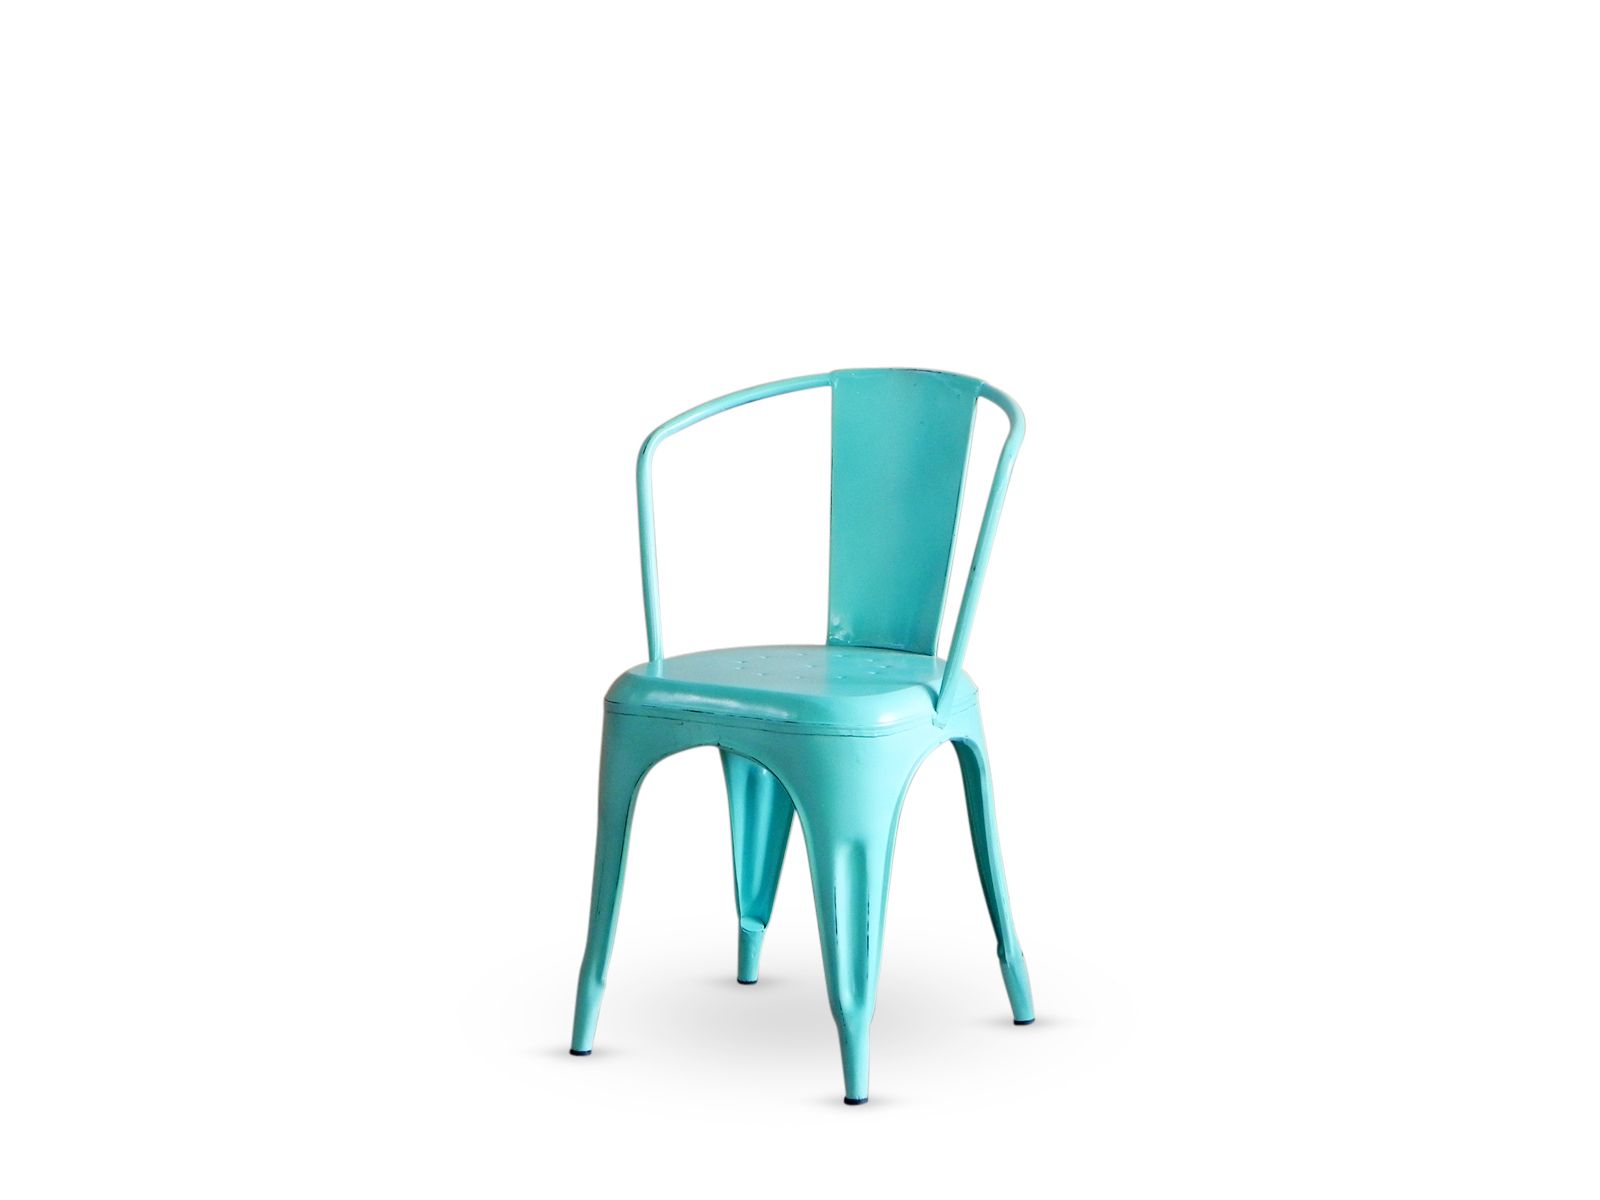 Outdoor Chairs Industrial Dining Chair With Arms In Turquoise Blue